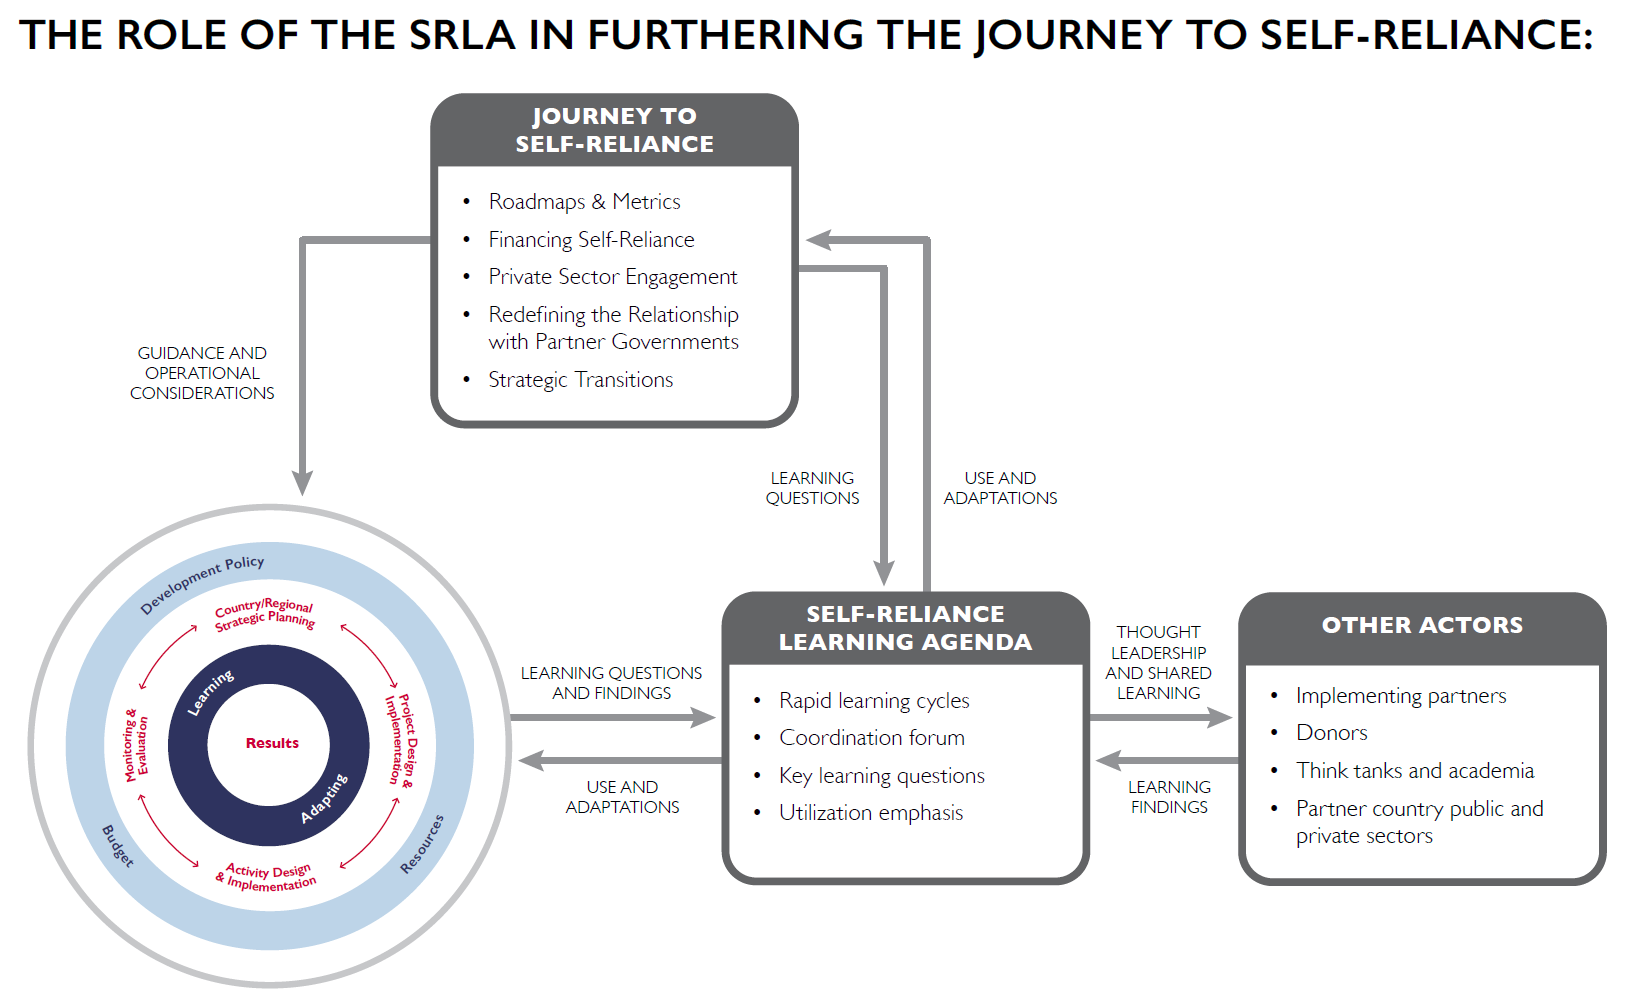 The role of SRLA in furthering the journey to self-reliance